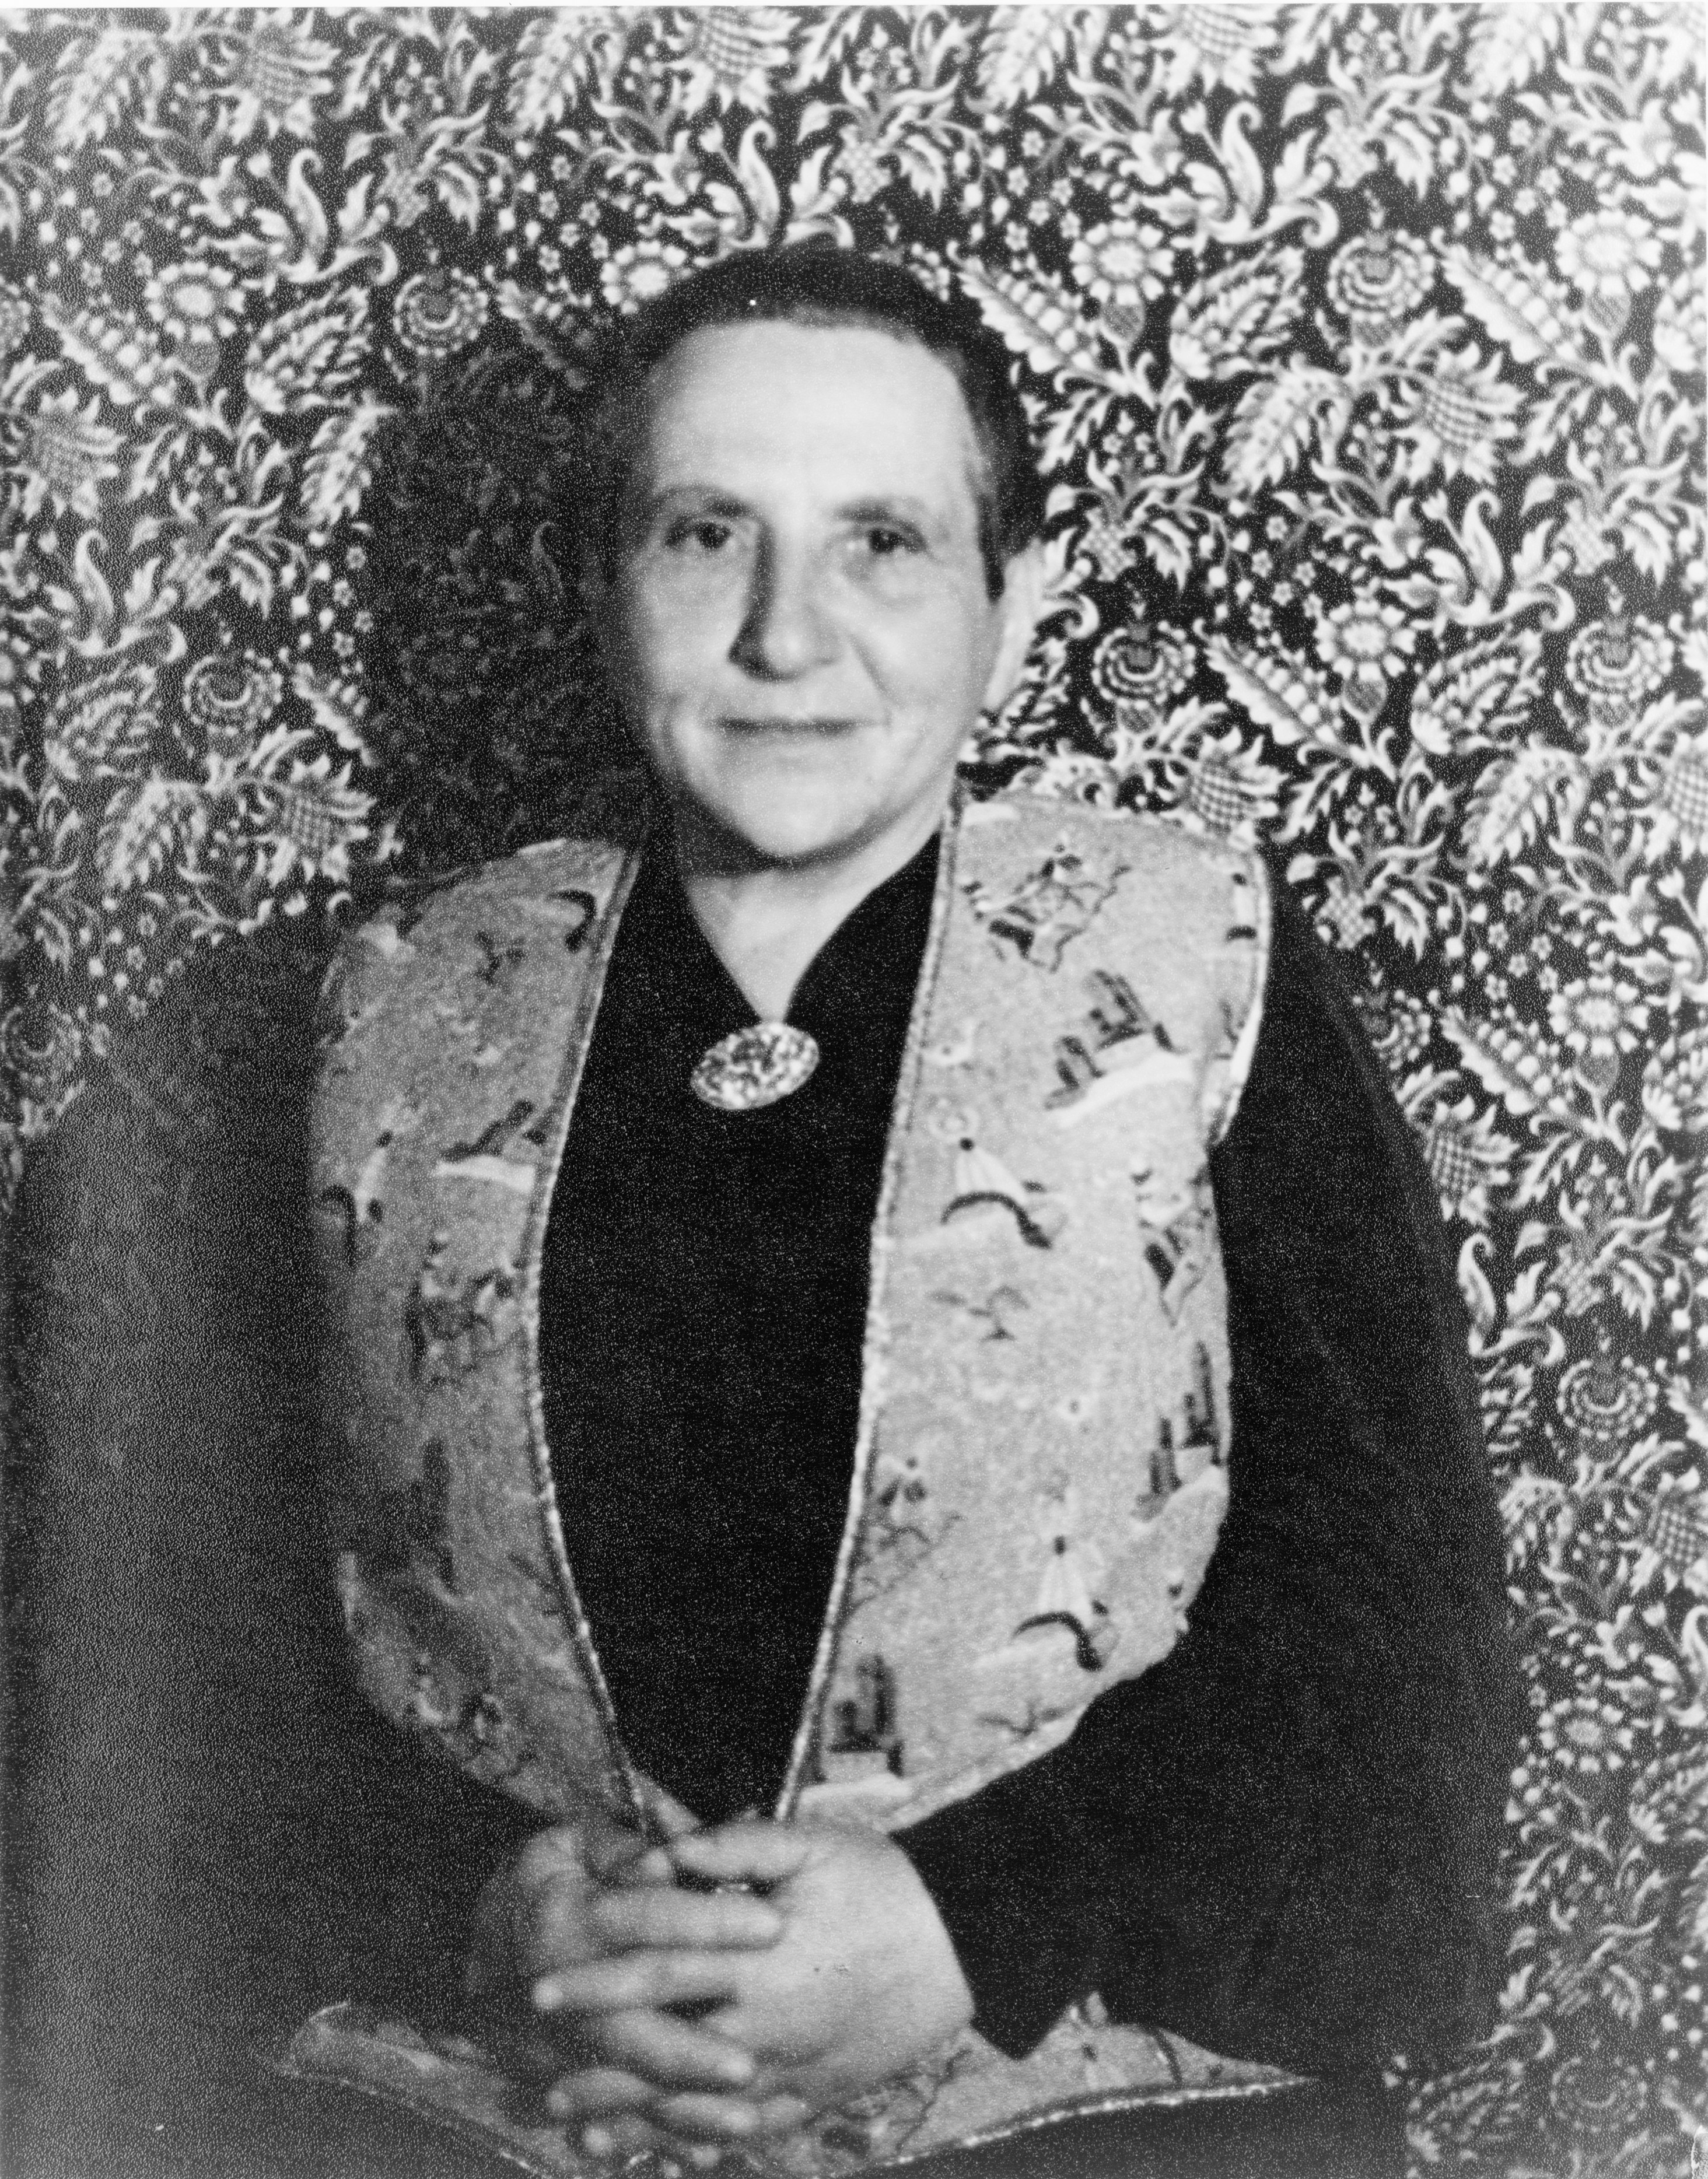 Gertrude Stein and picasso